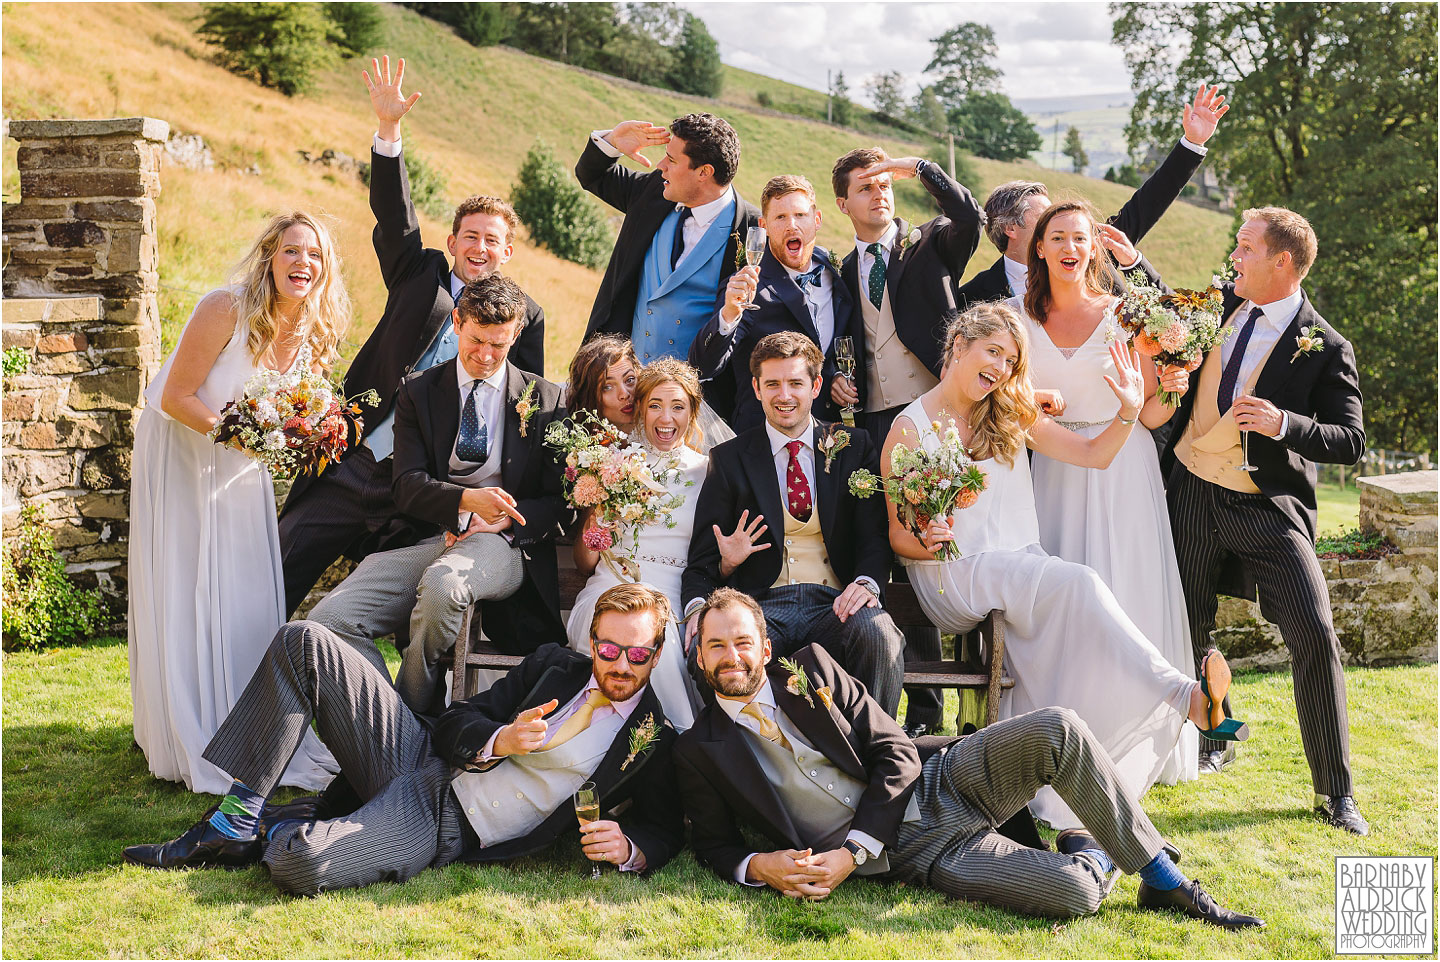 Amazing bridesmaids and groomsmen group photos